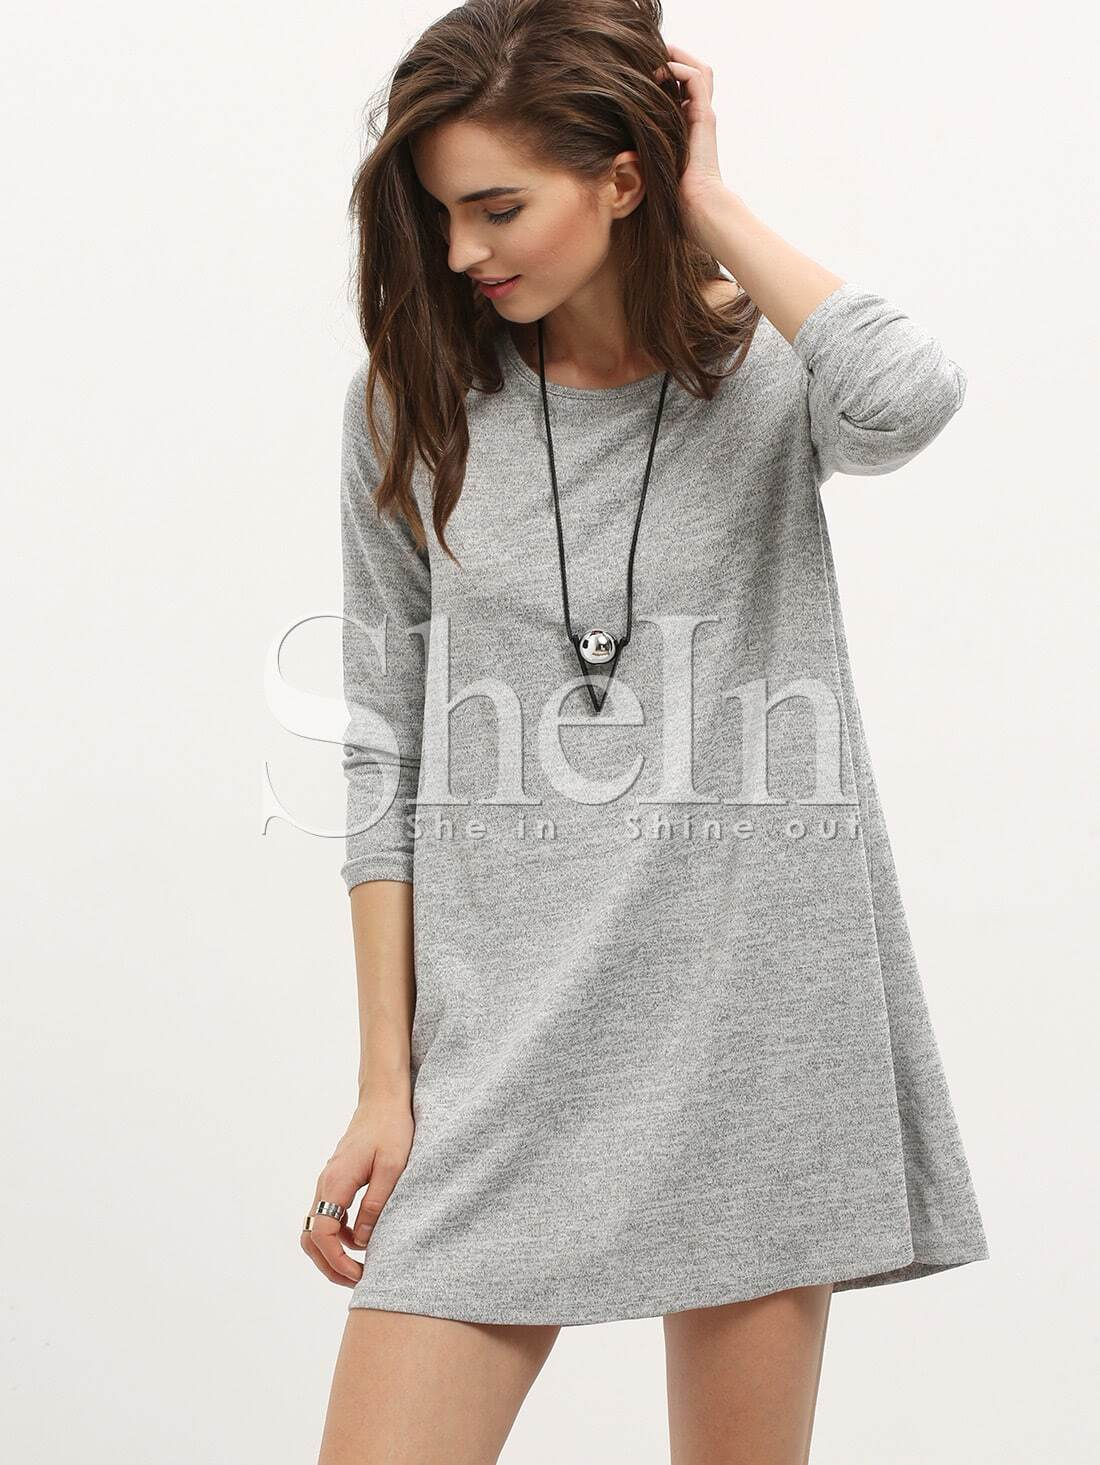 Long Sleeve Casual Dress dress151016709